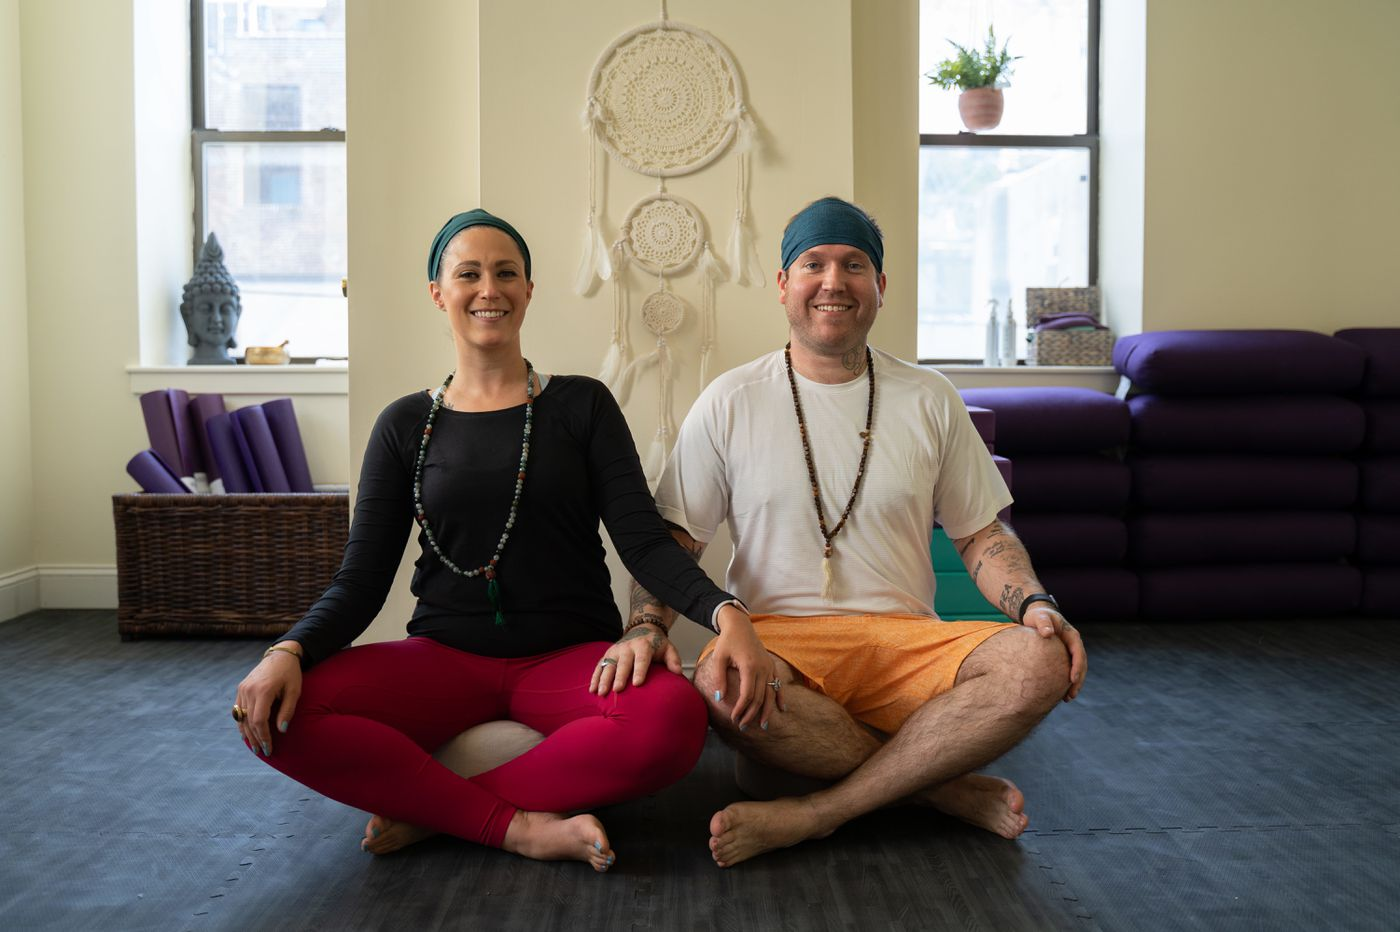 No more dingy church basements: This couple has created a beautiful, community yoga studio for people in recovery